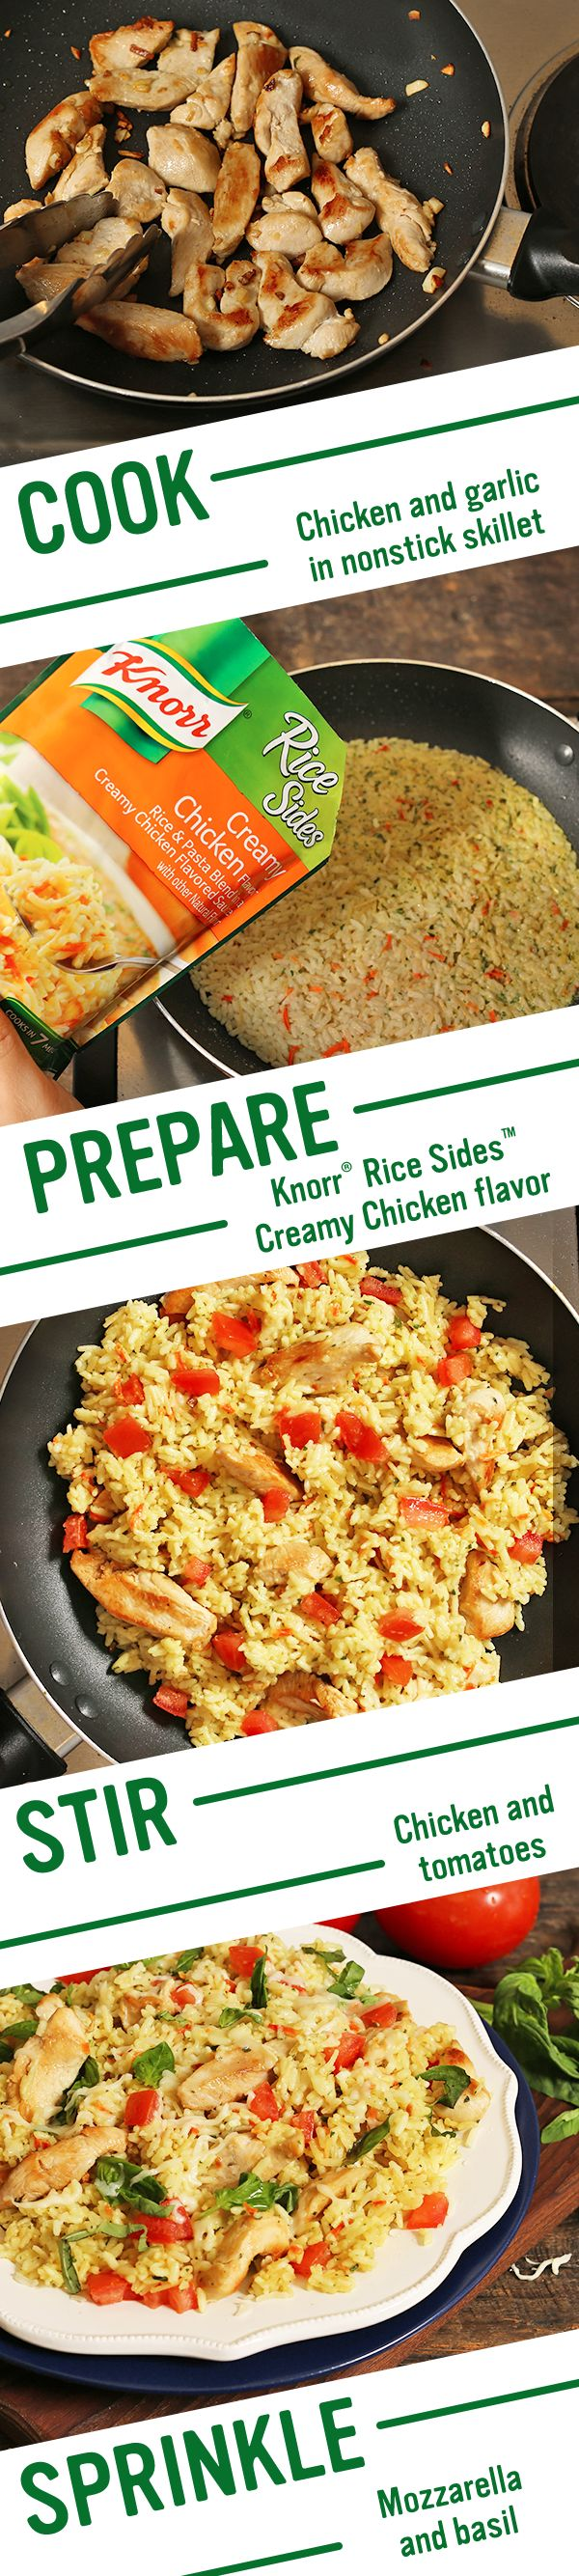 Knorr's Creamy Bruschetta Chicken is a family favorite. Make it tonight! 1. Cook chicken & then add garlic 2. Prepare Knorr® Rice Sides™ - Creamy Chicken flavor according to package directions 3. Stir in chicken & tomatoes 4. Sprinkle with cheese & basil.